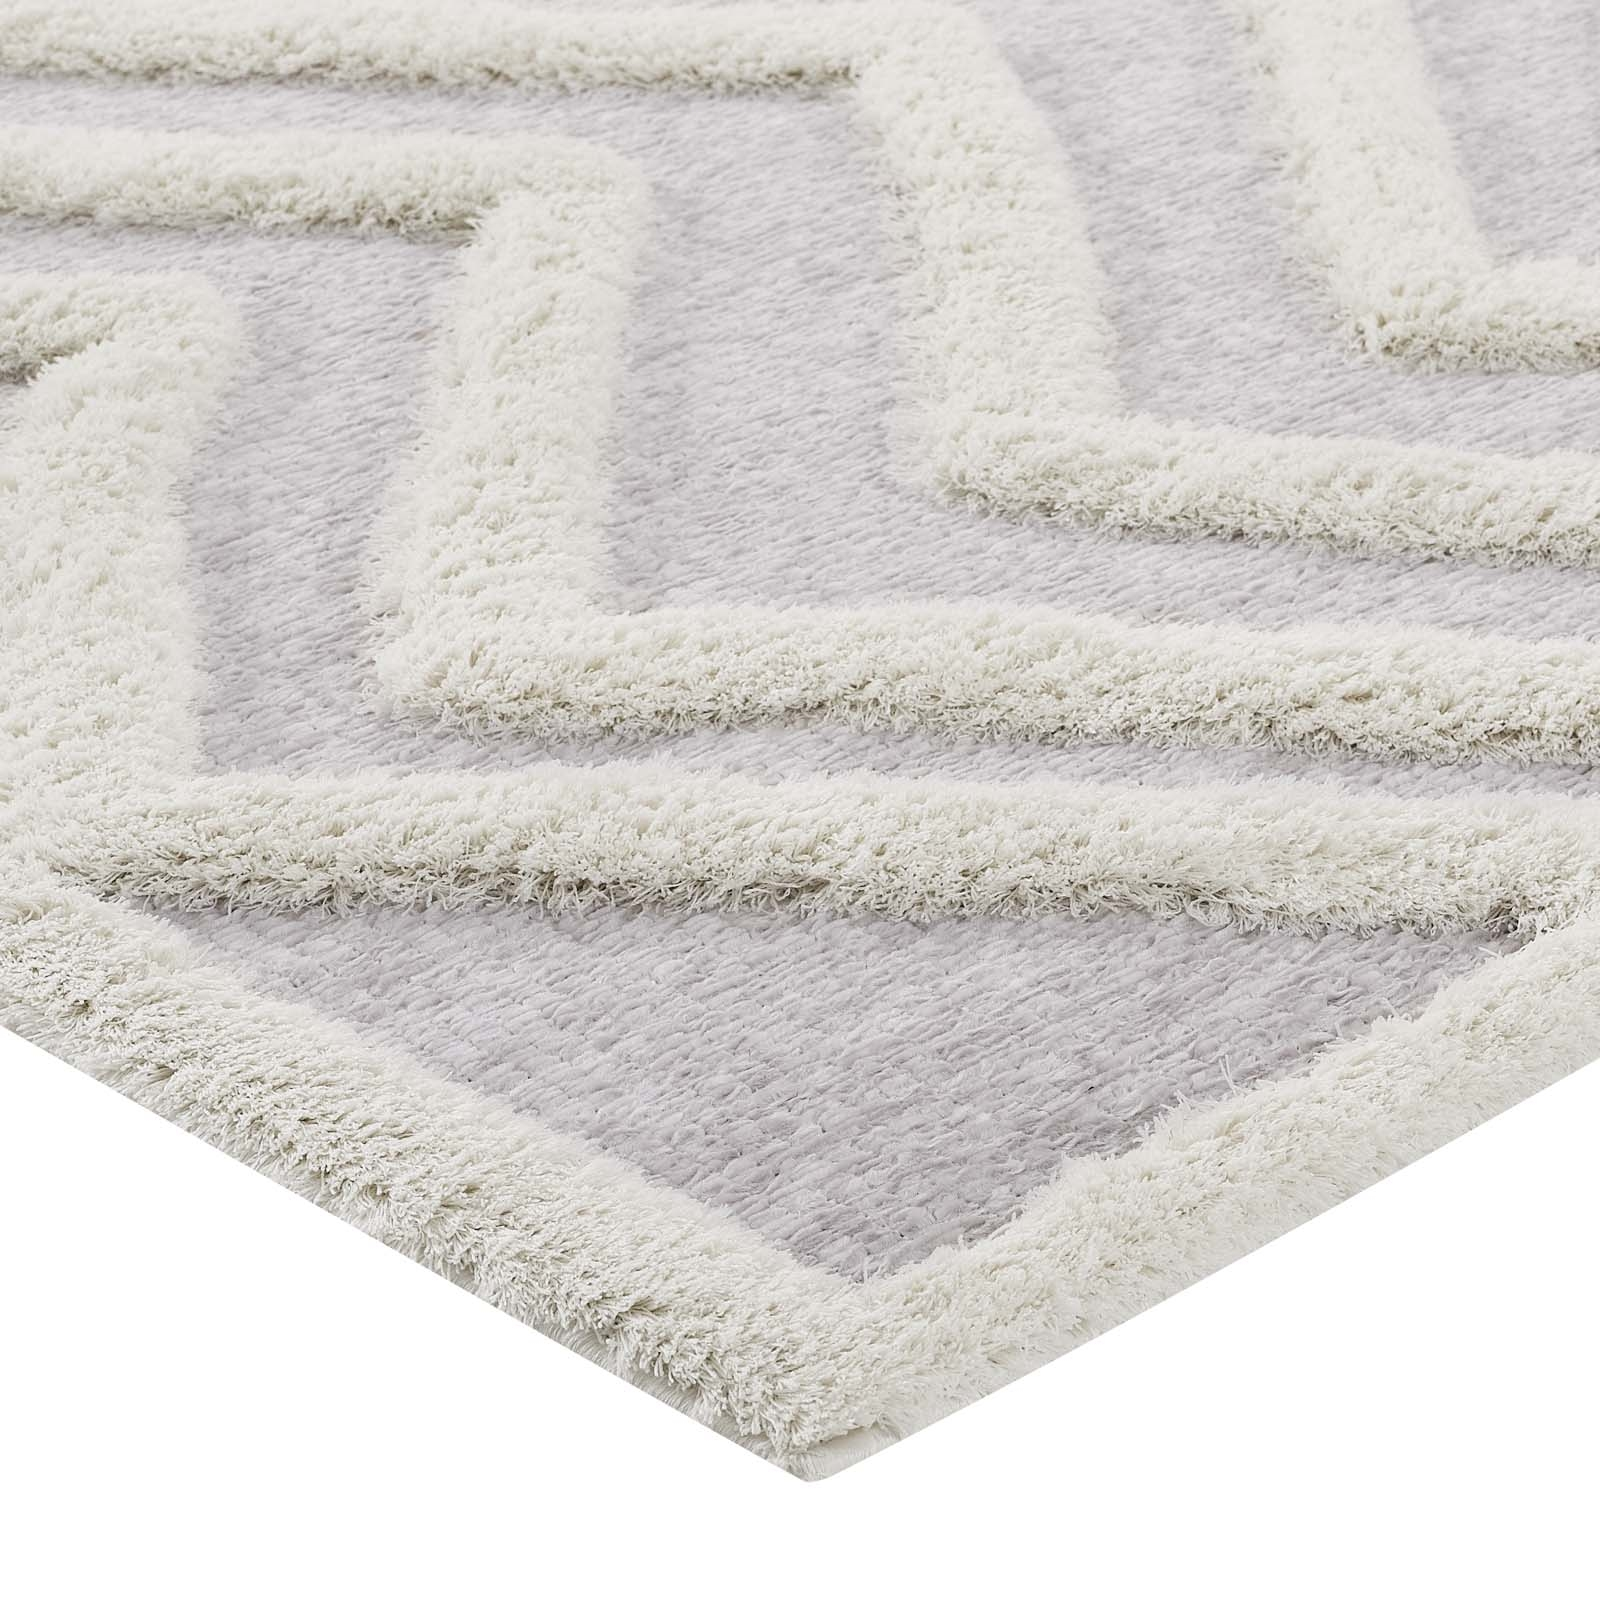 Whimsical Pathway Abstract Chevron 5x8 Shag Area Rug in Ivory and Light Gray